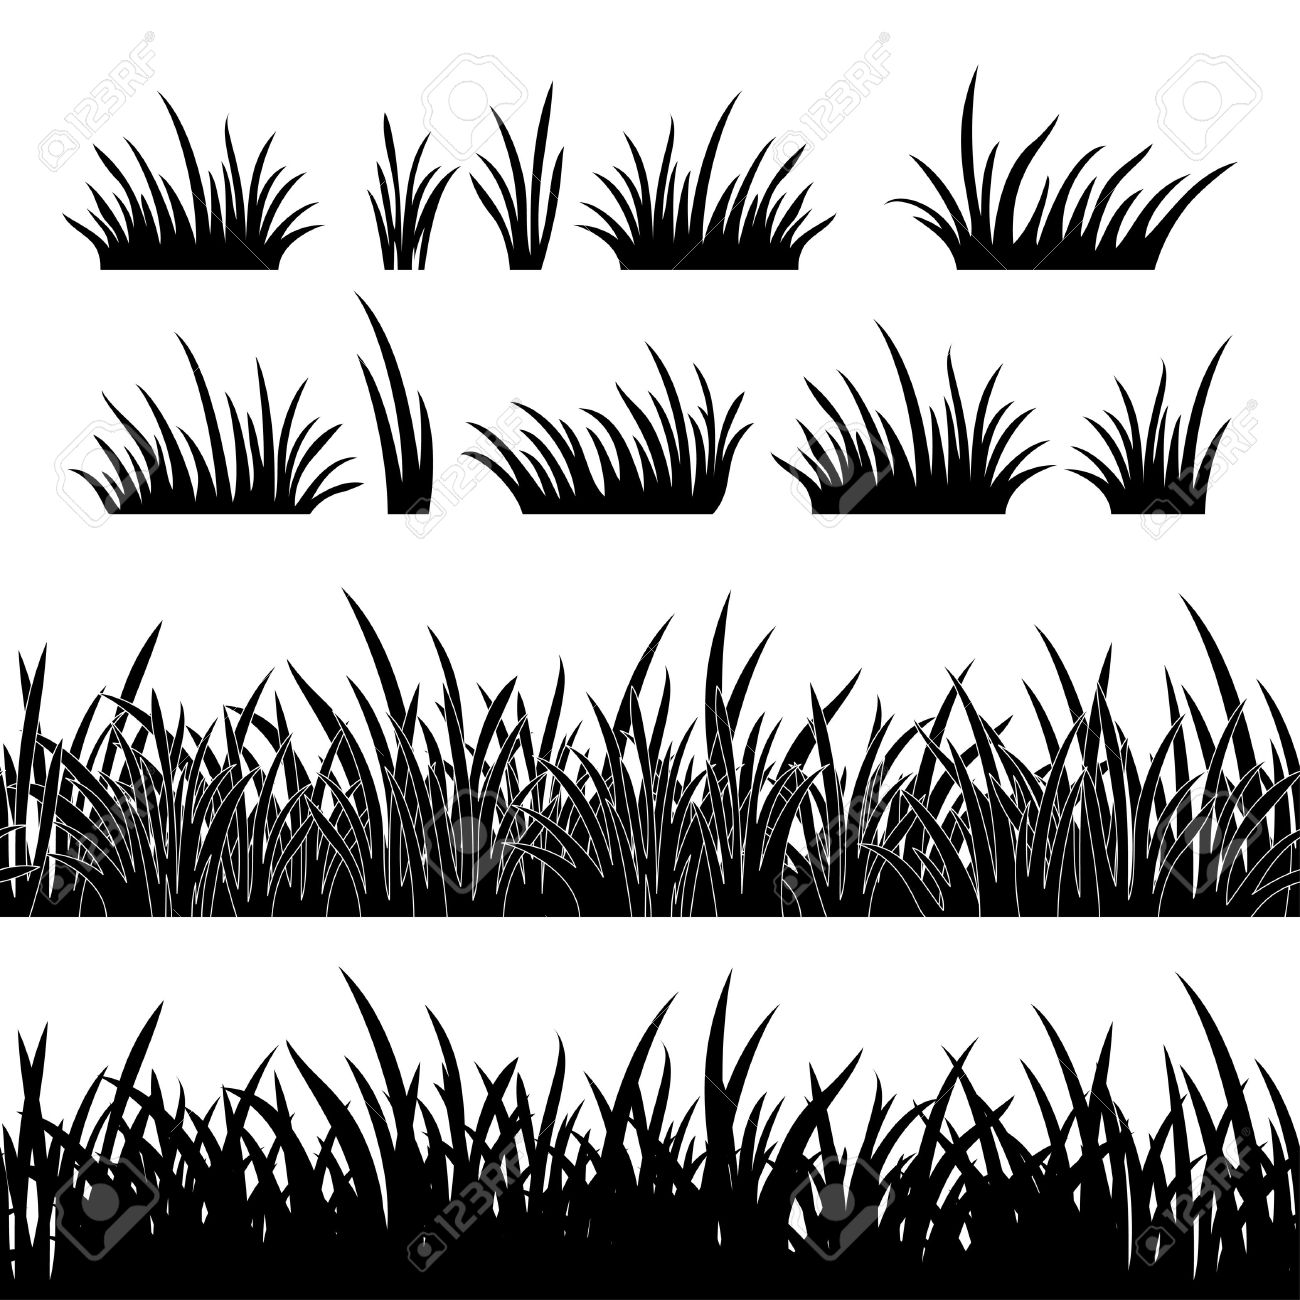 Black And White Grass Background Clipart.